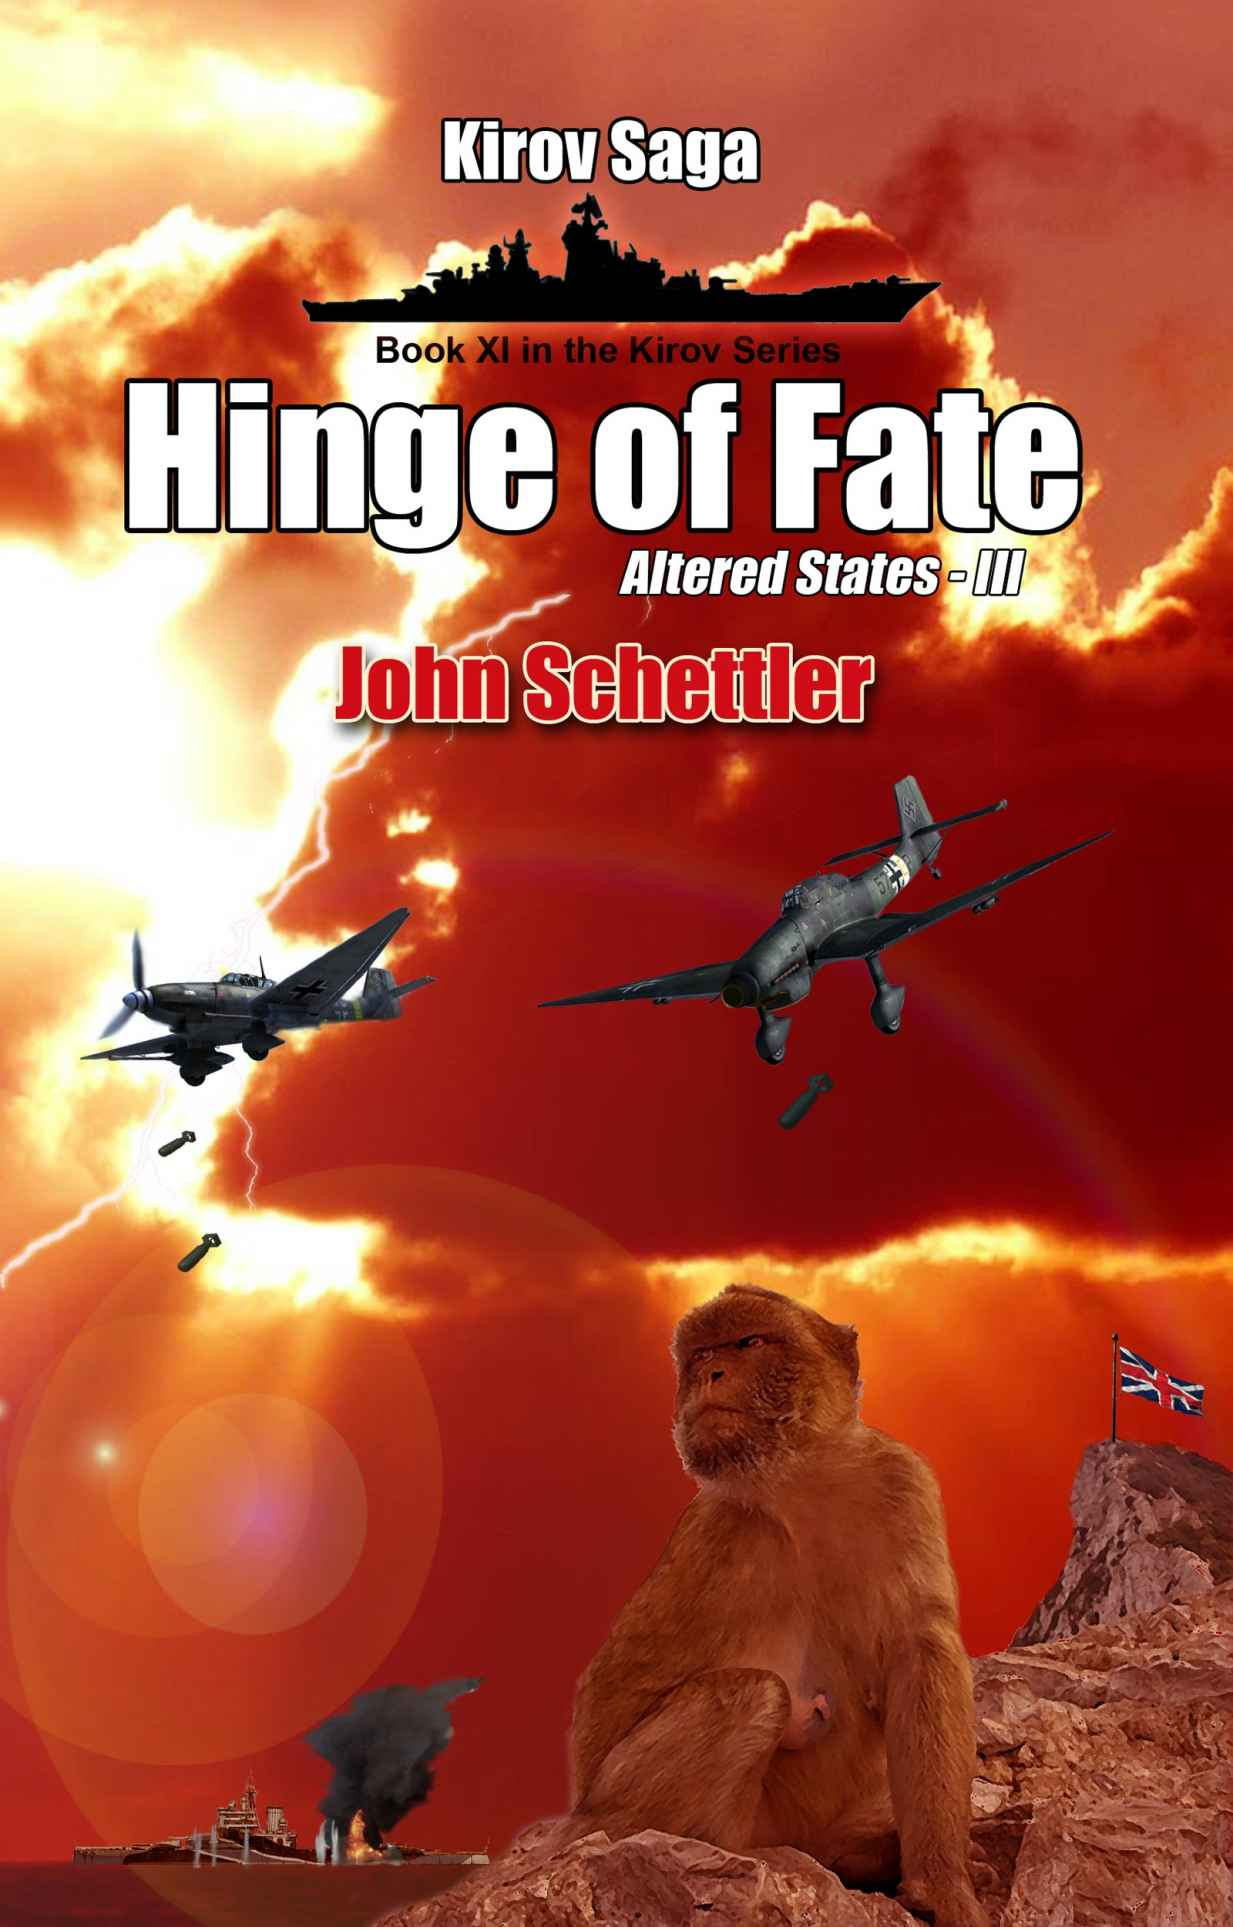 обложка книги Altered States -Volume III. Hinge of Fate